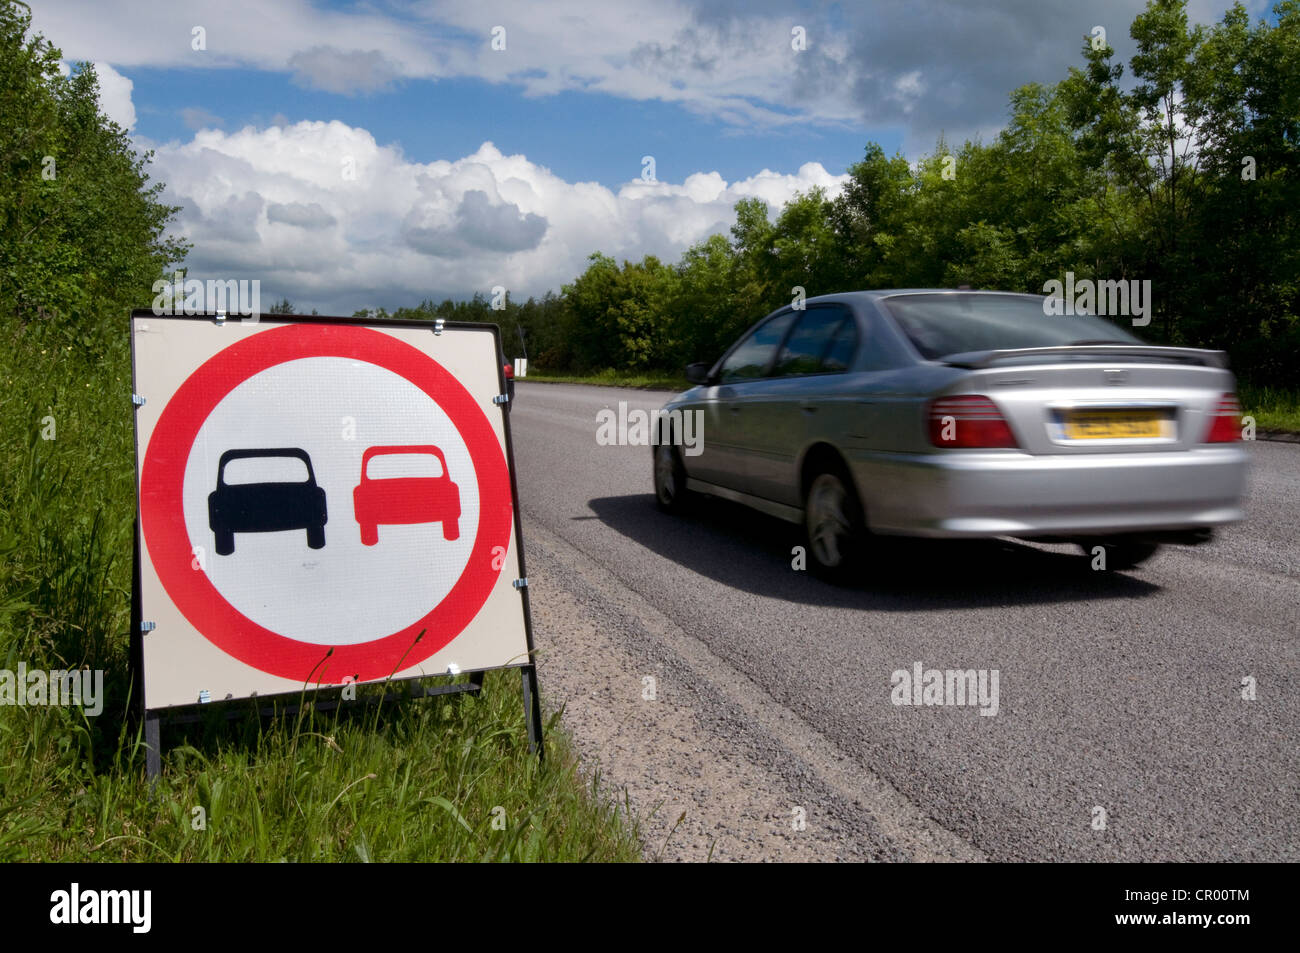 car passing no overtaking warning sign due to loose chippings on newly resurfaced road uk - Stock Image